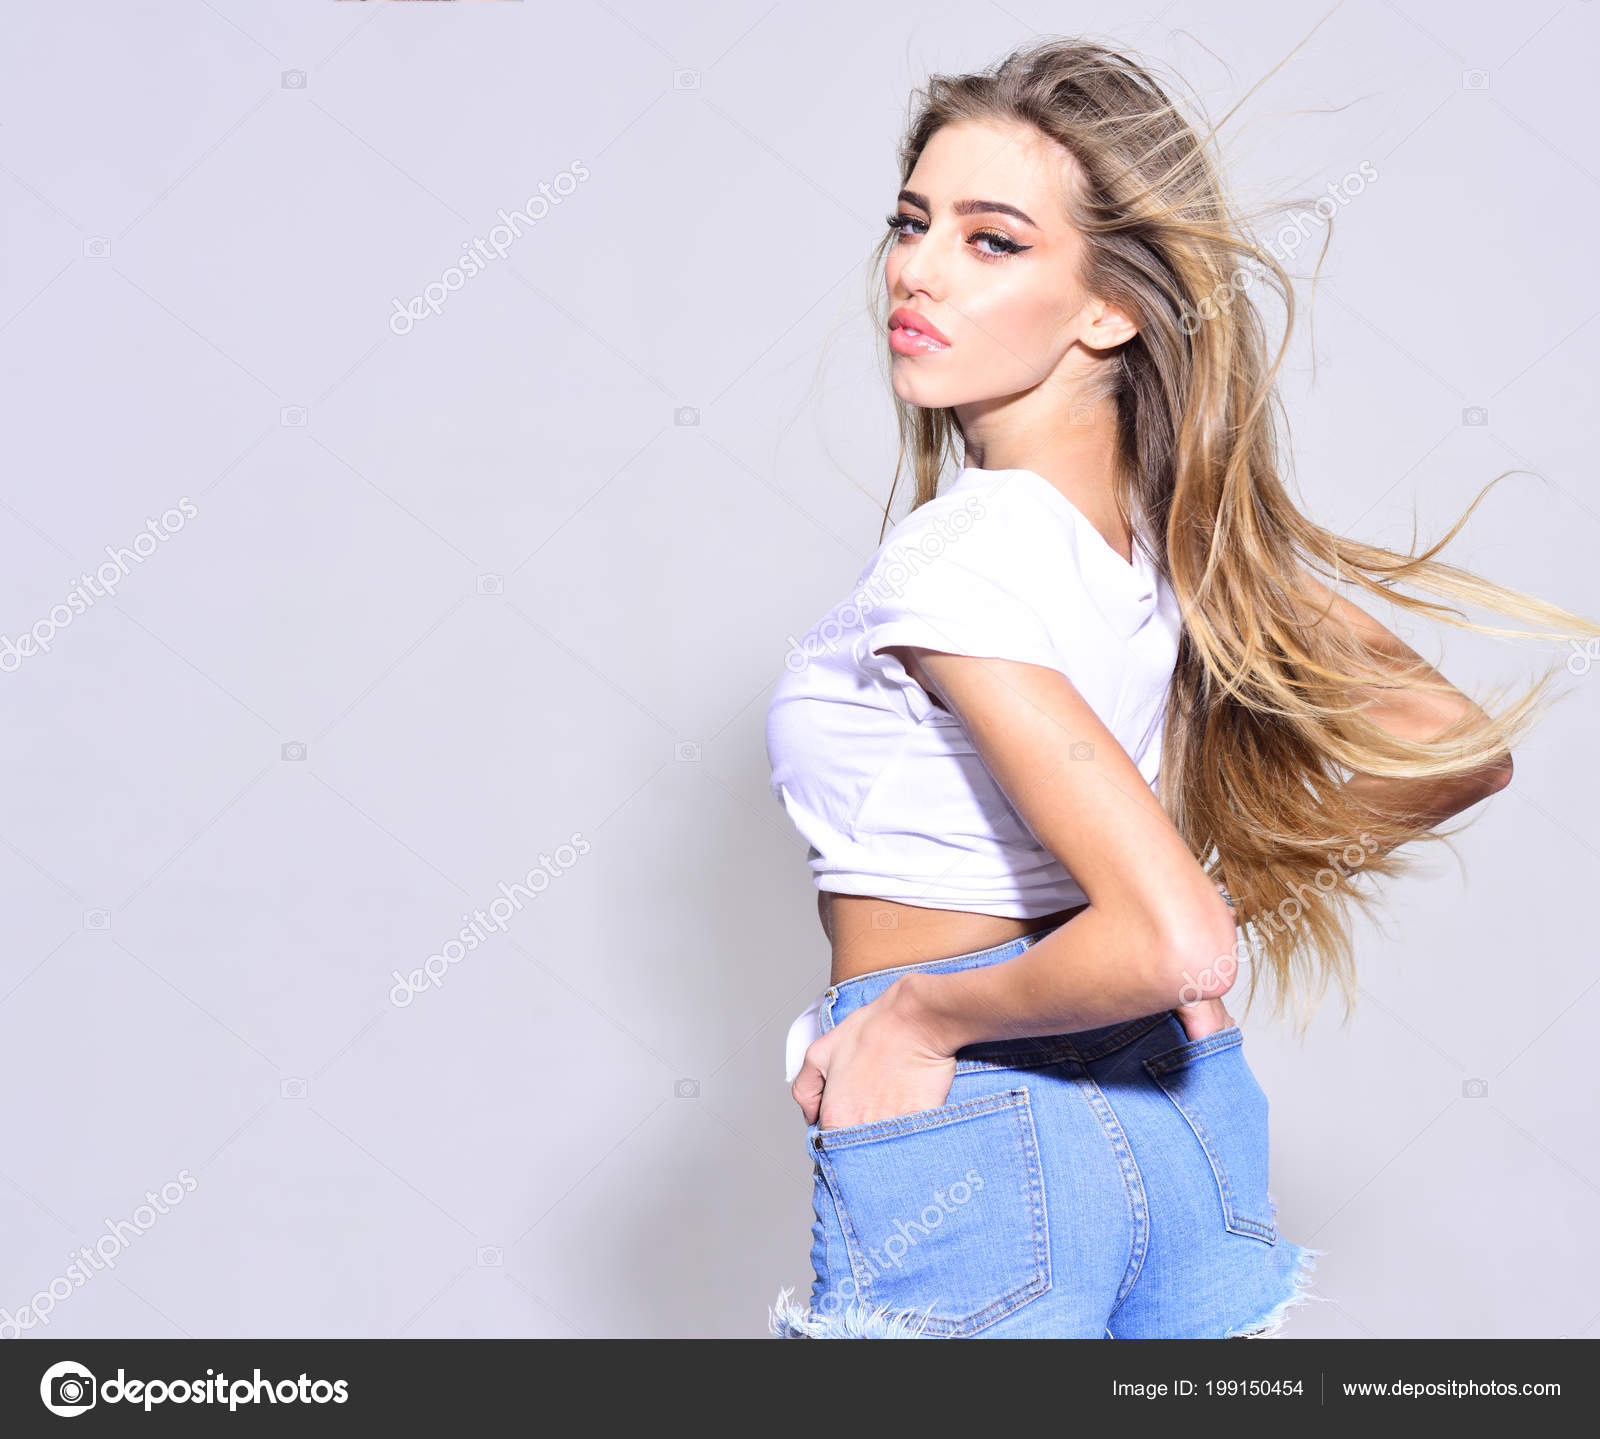 99f6805c2 Trendy girl with makeup on sensual face. Summer fashion for woman in summer  style. Sexy woman with stylish long hair in jeans shorts.